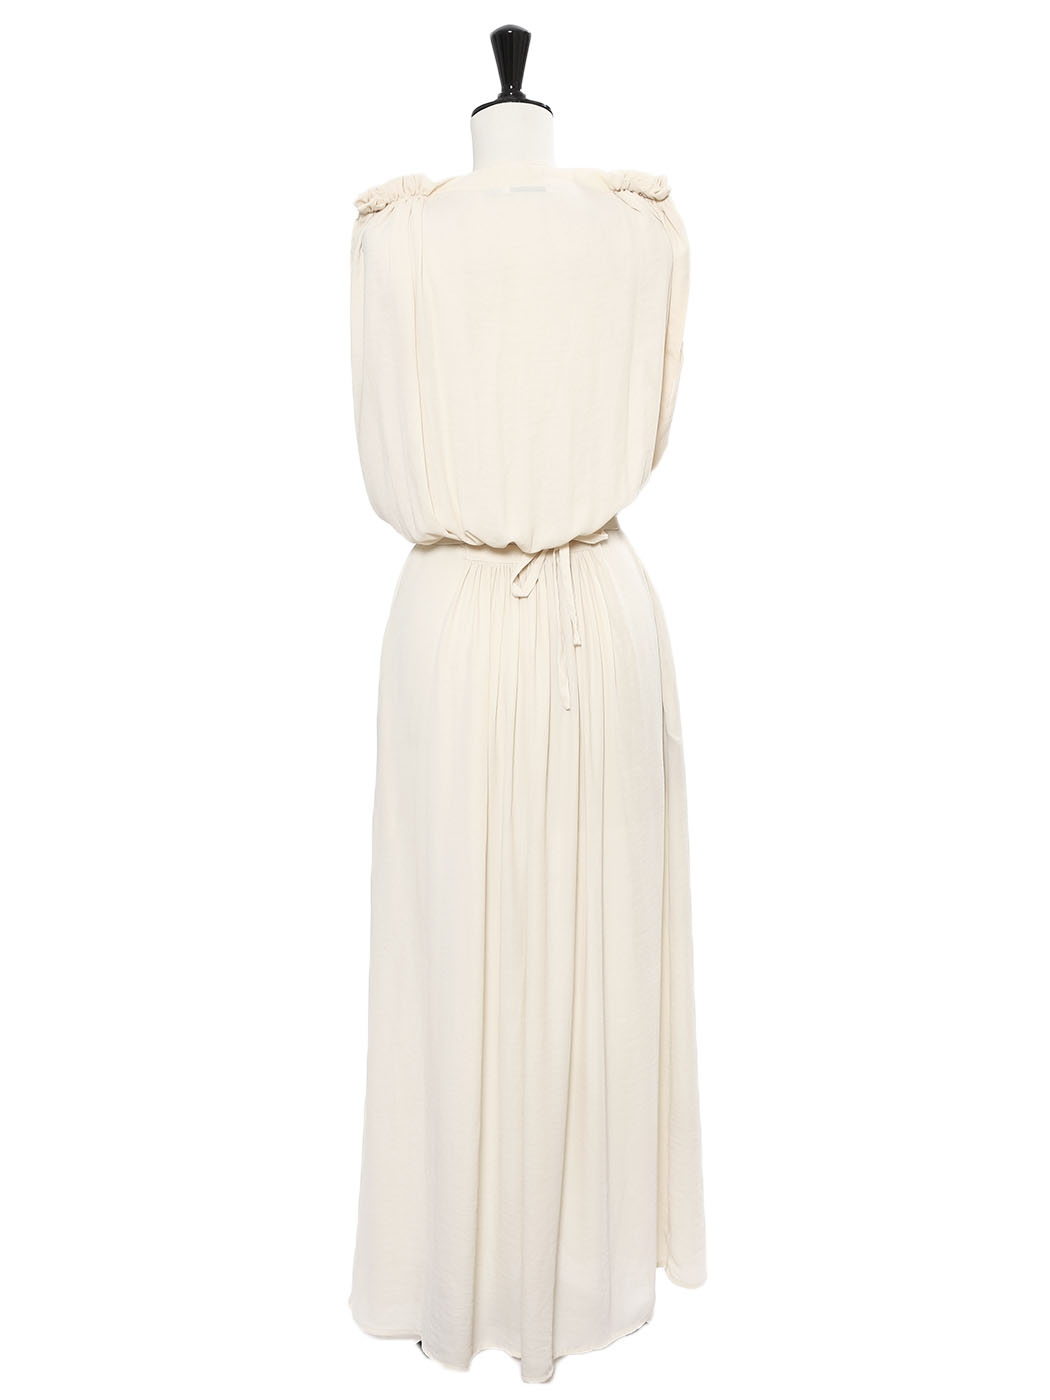 8eccc0d06b Louise Paris - SEE BY CHLOE Grecian style cream white draped belted ...